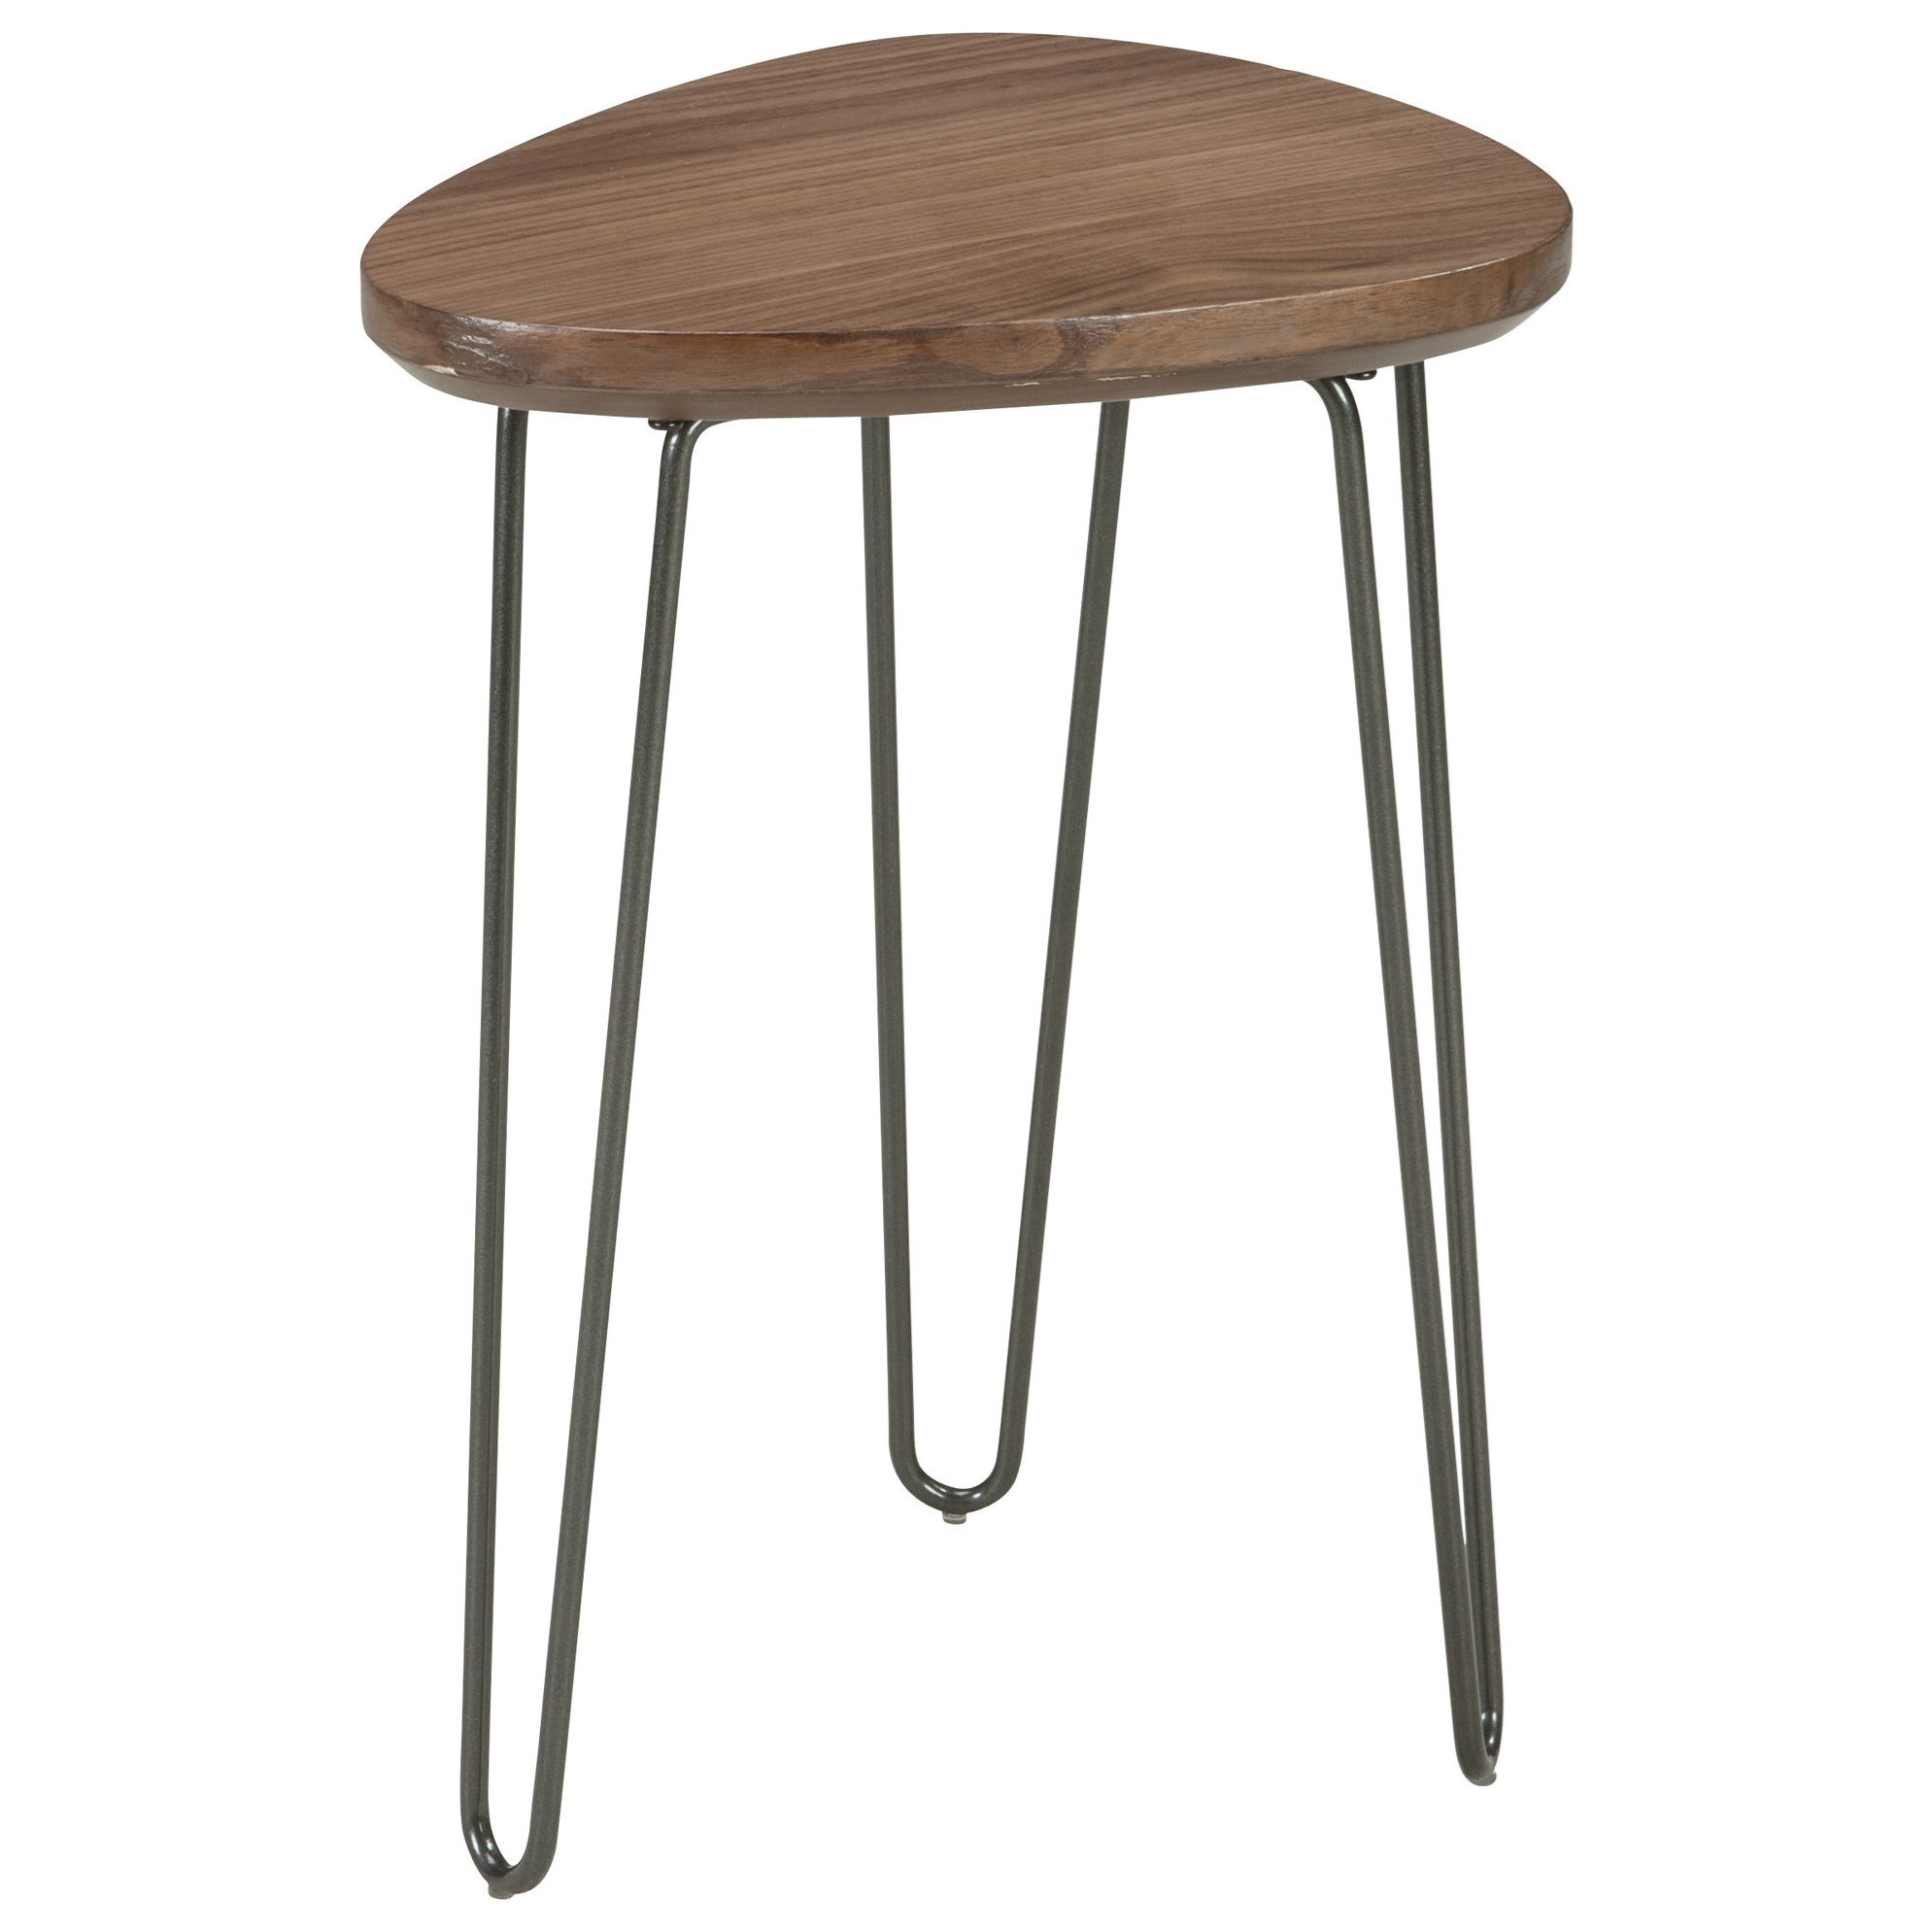 Signature Design by Ashley Courager Chair Side End Table - Item Number: T242-7